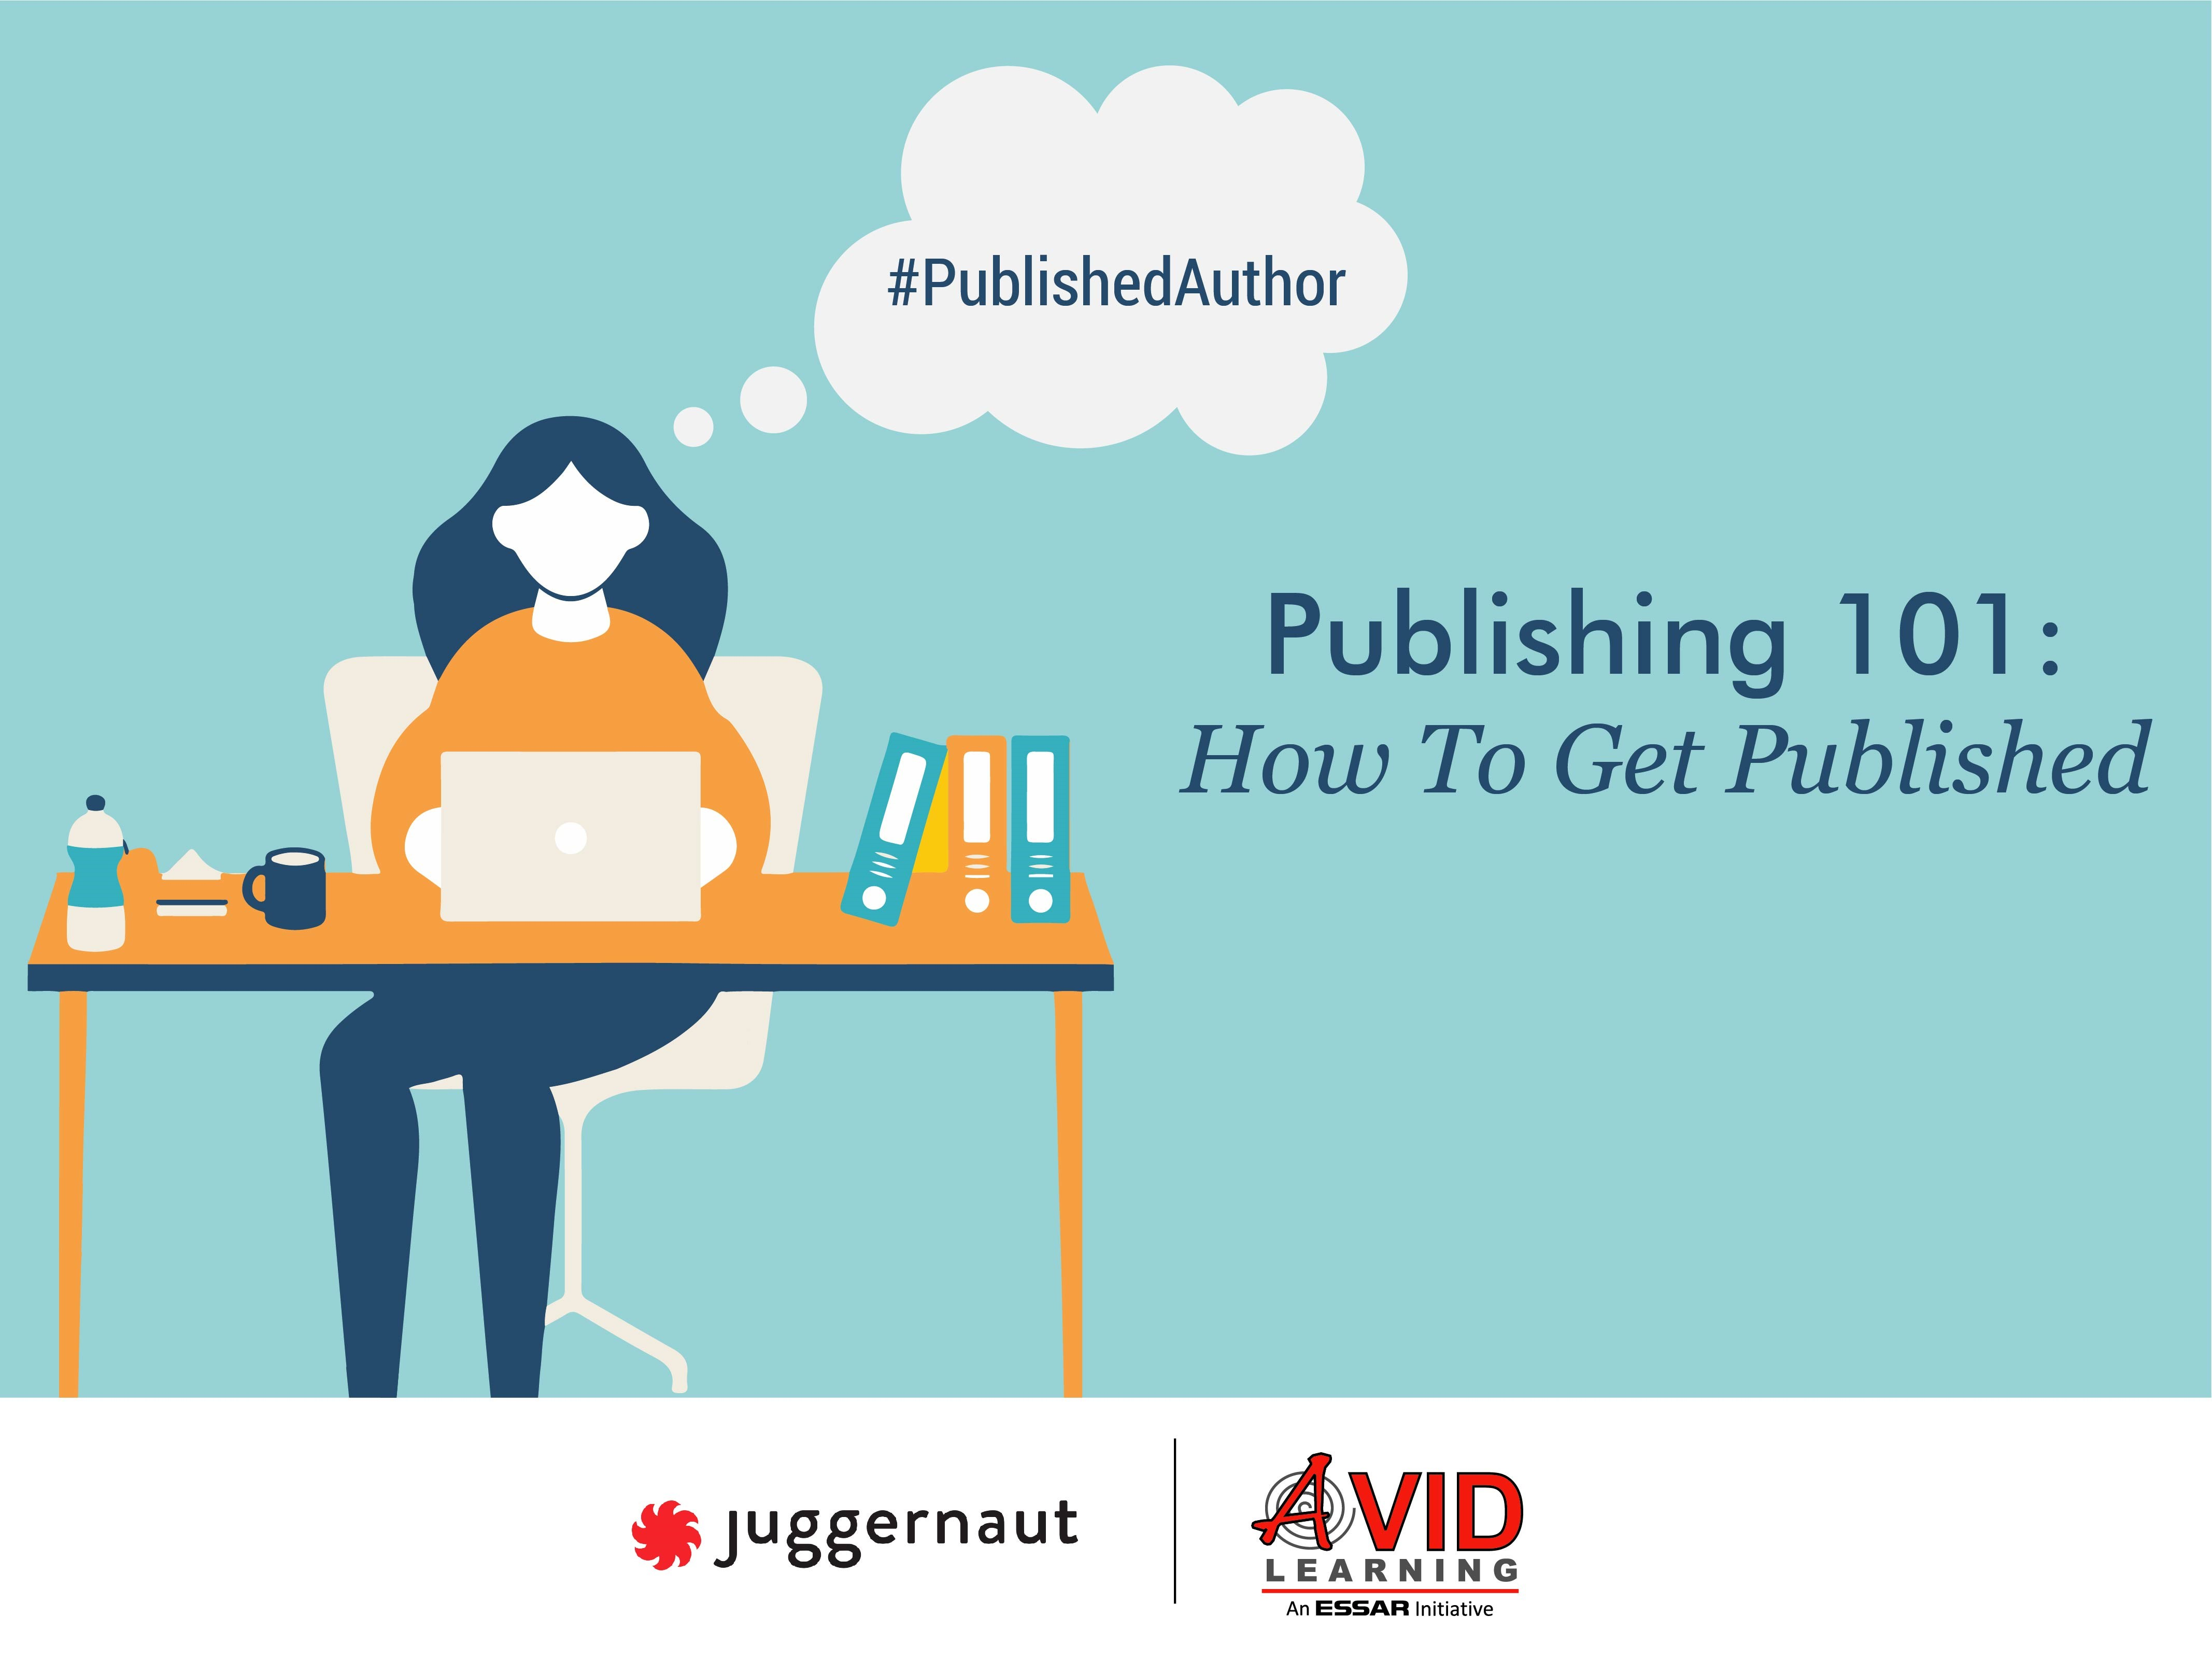 A000 - Publishing 101: How to Get Published with Chiki Sarkar